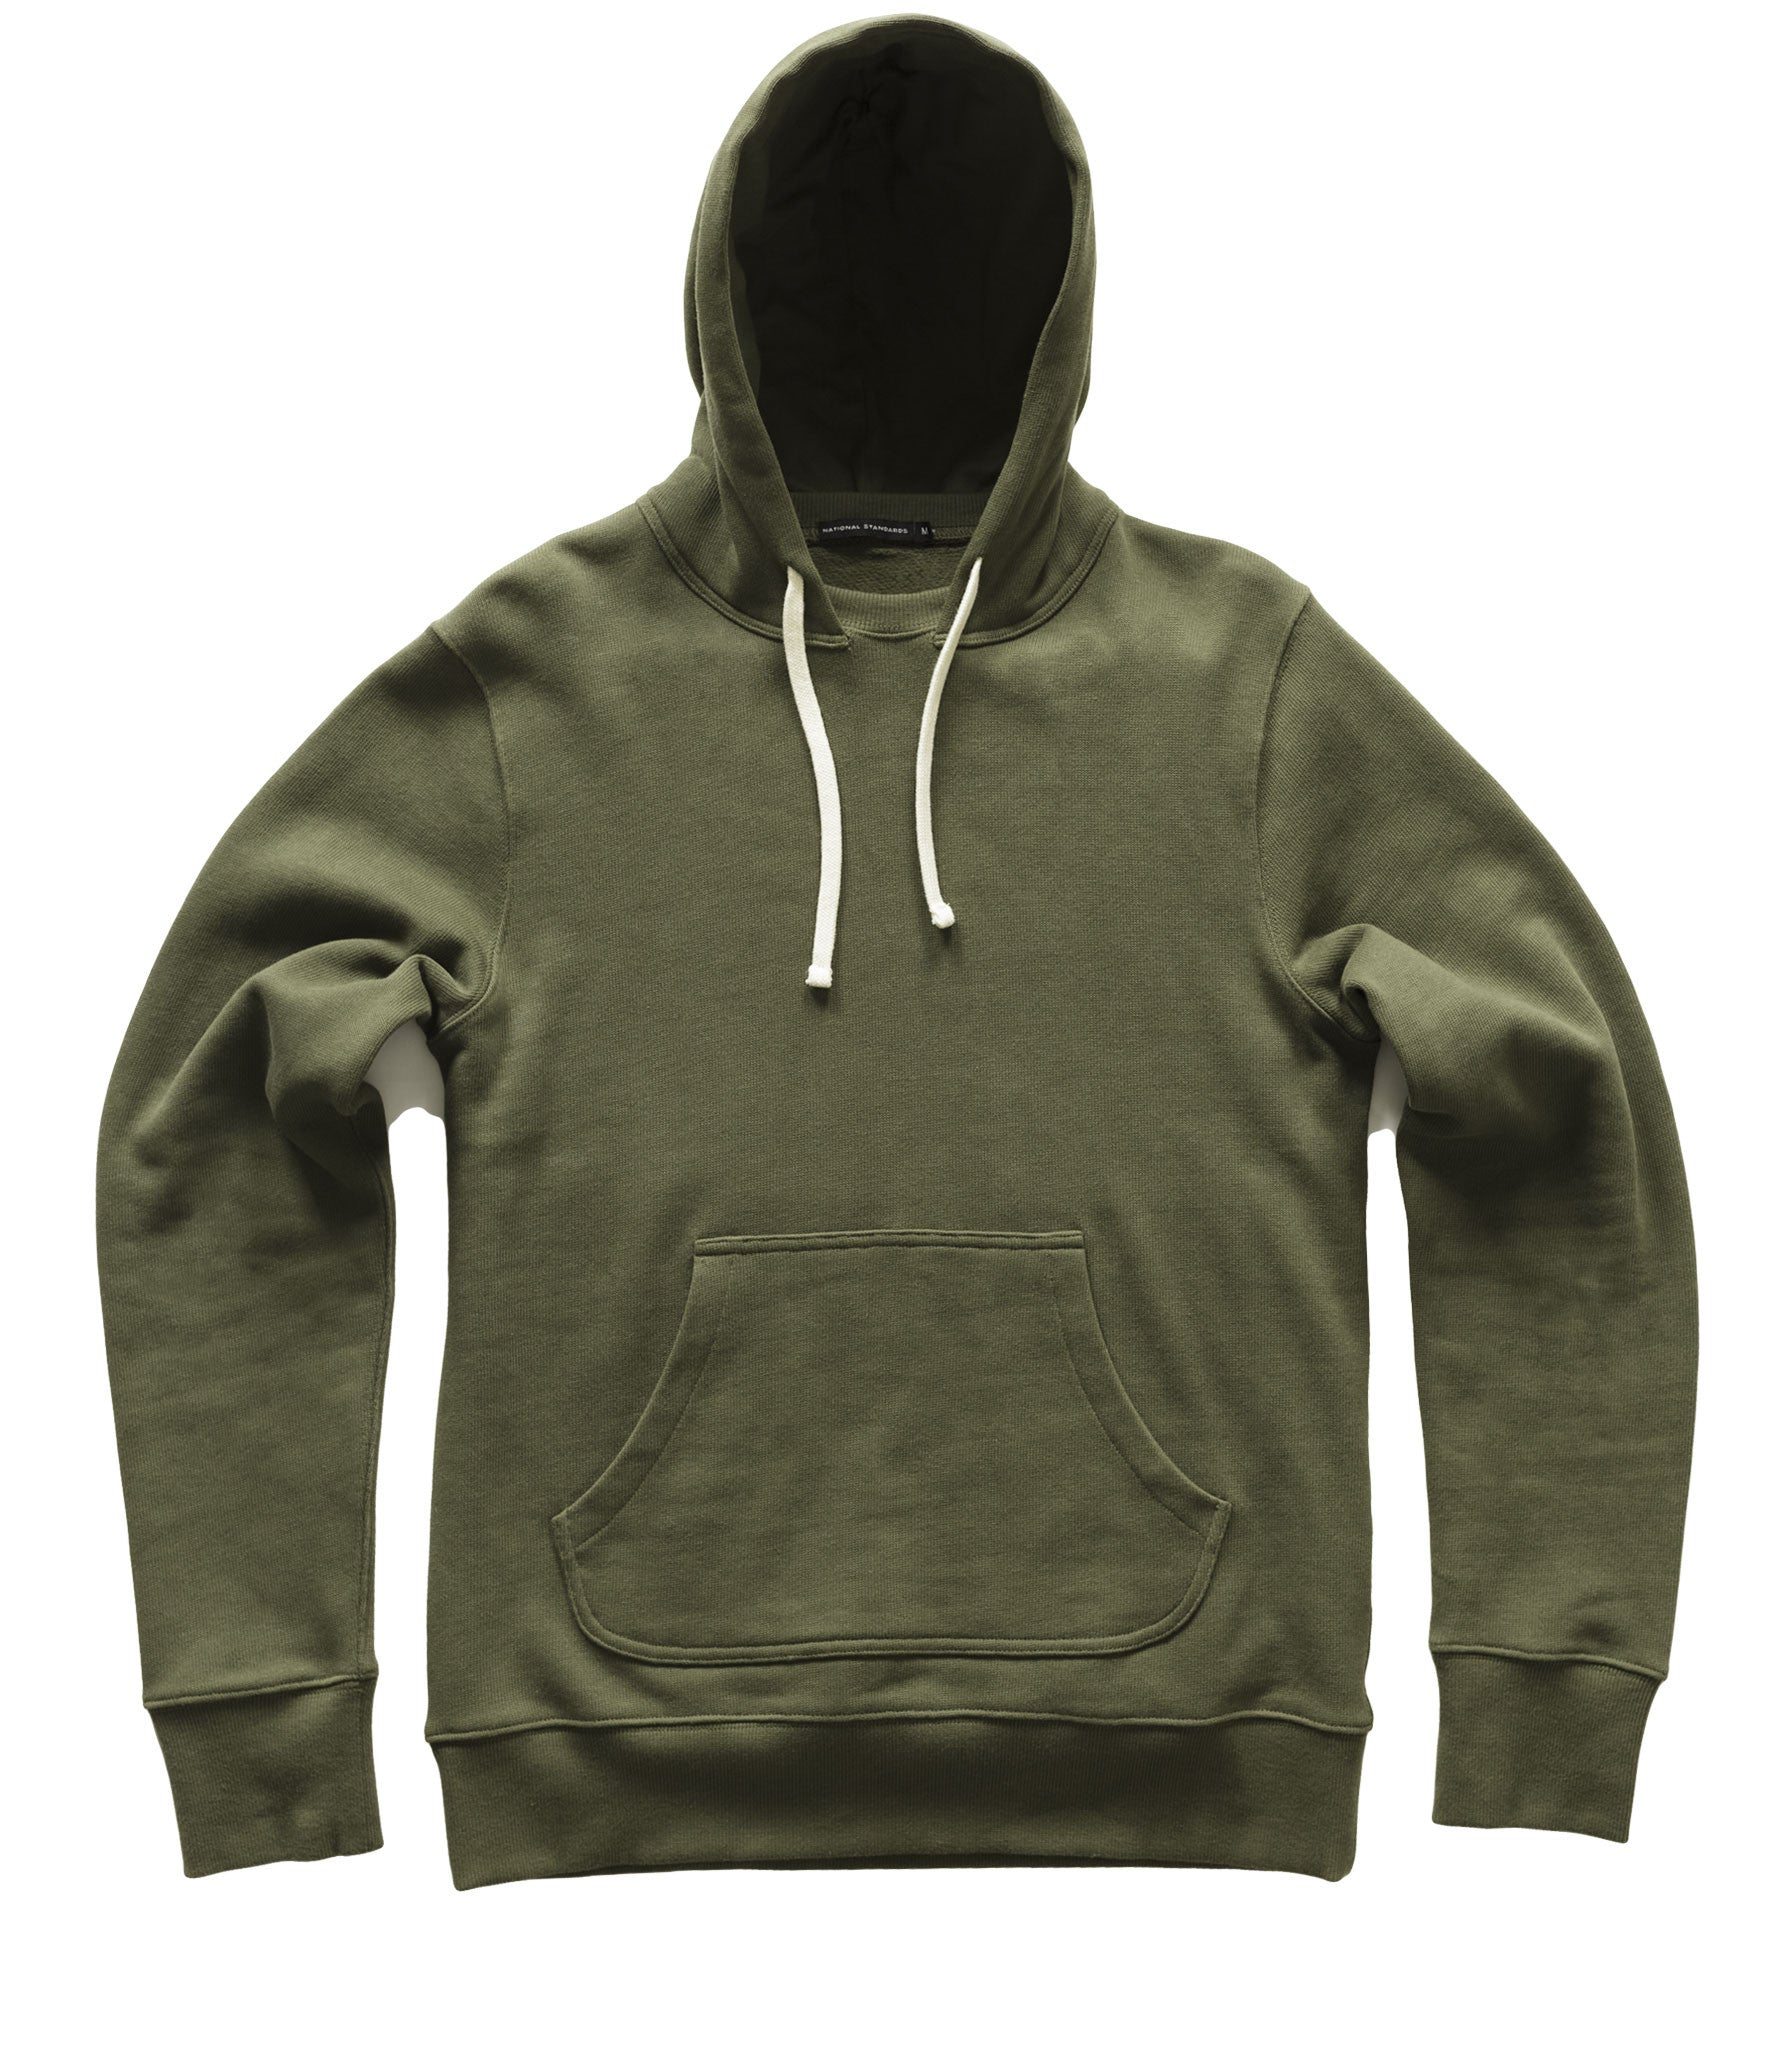 Pullover hoodie in Green